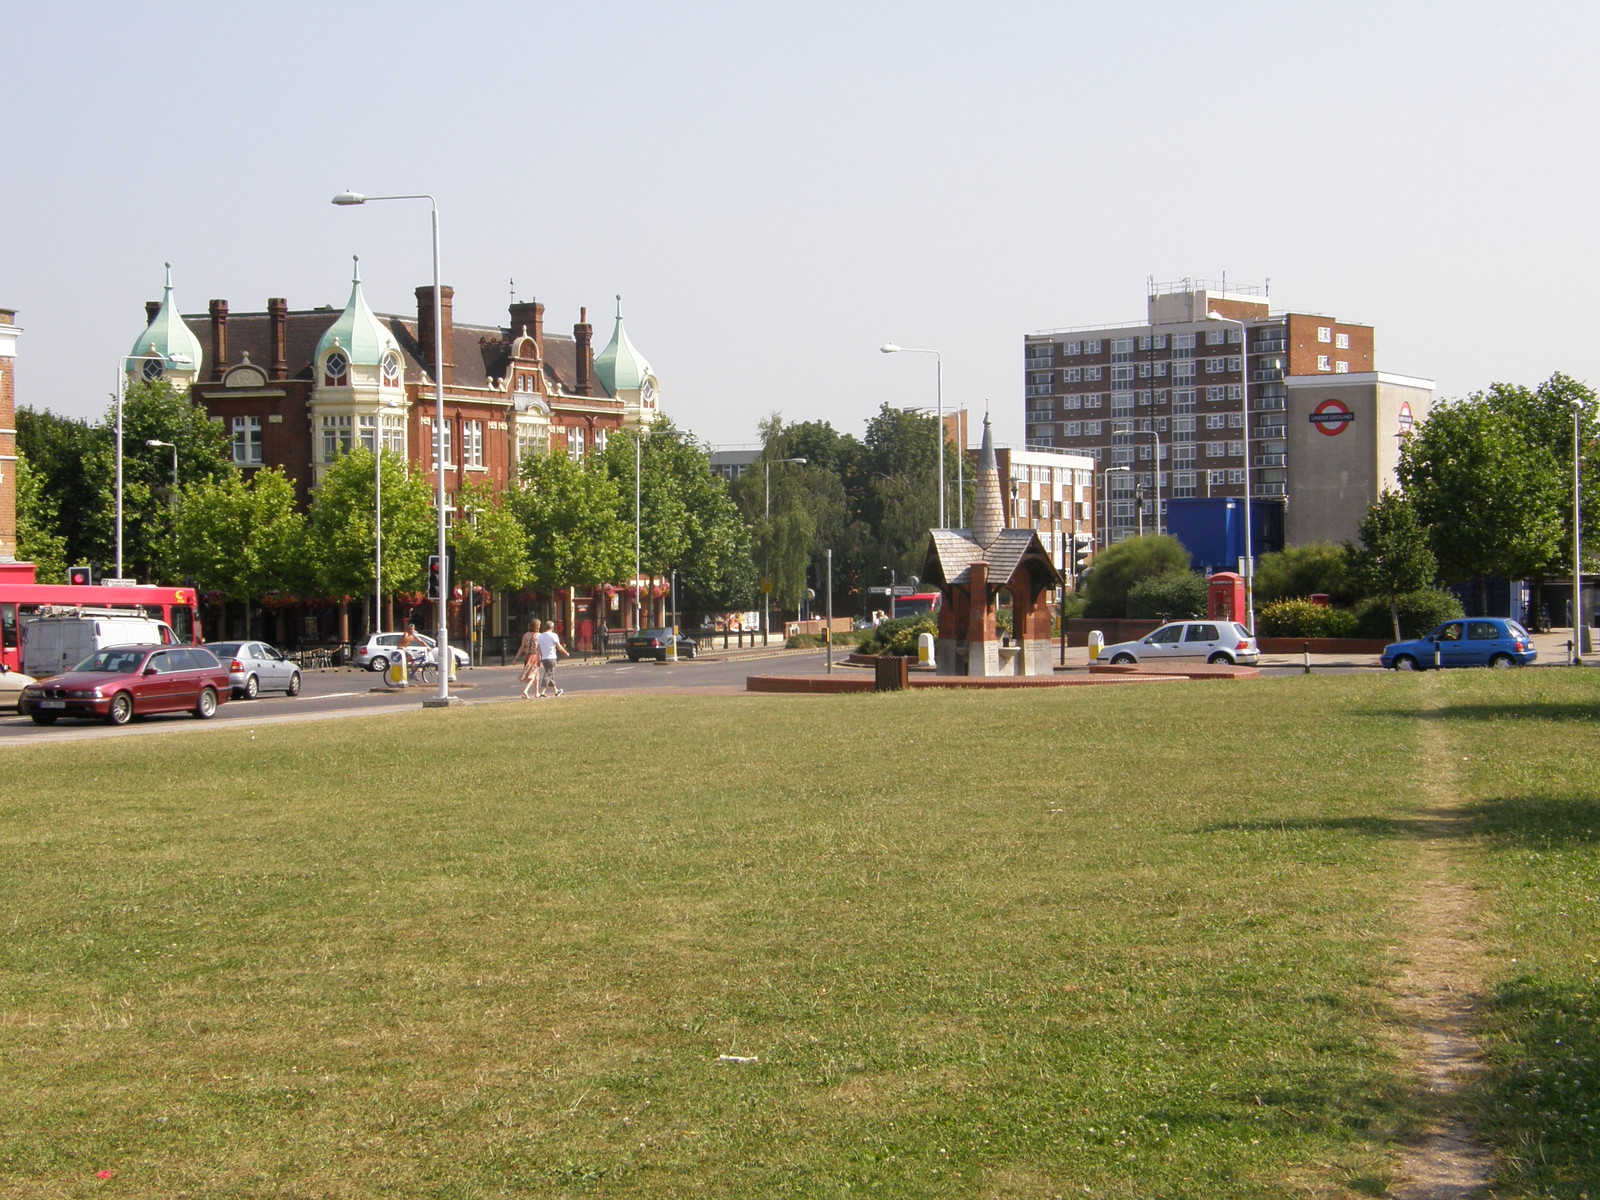 Image from Leytonstone to Barkingside